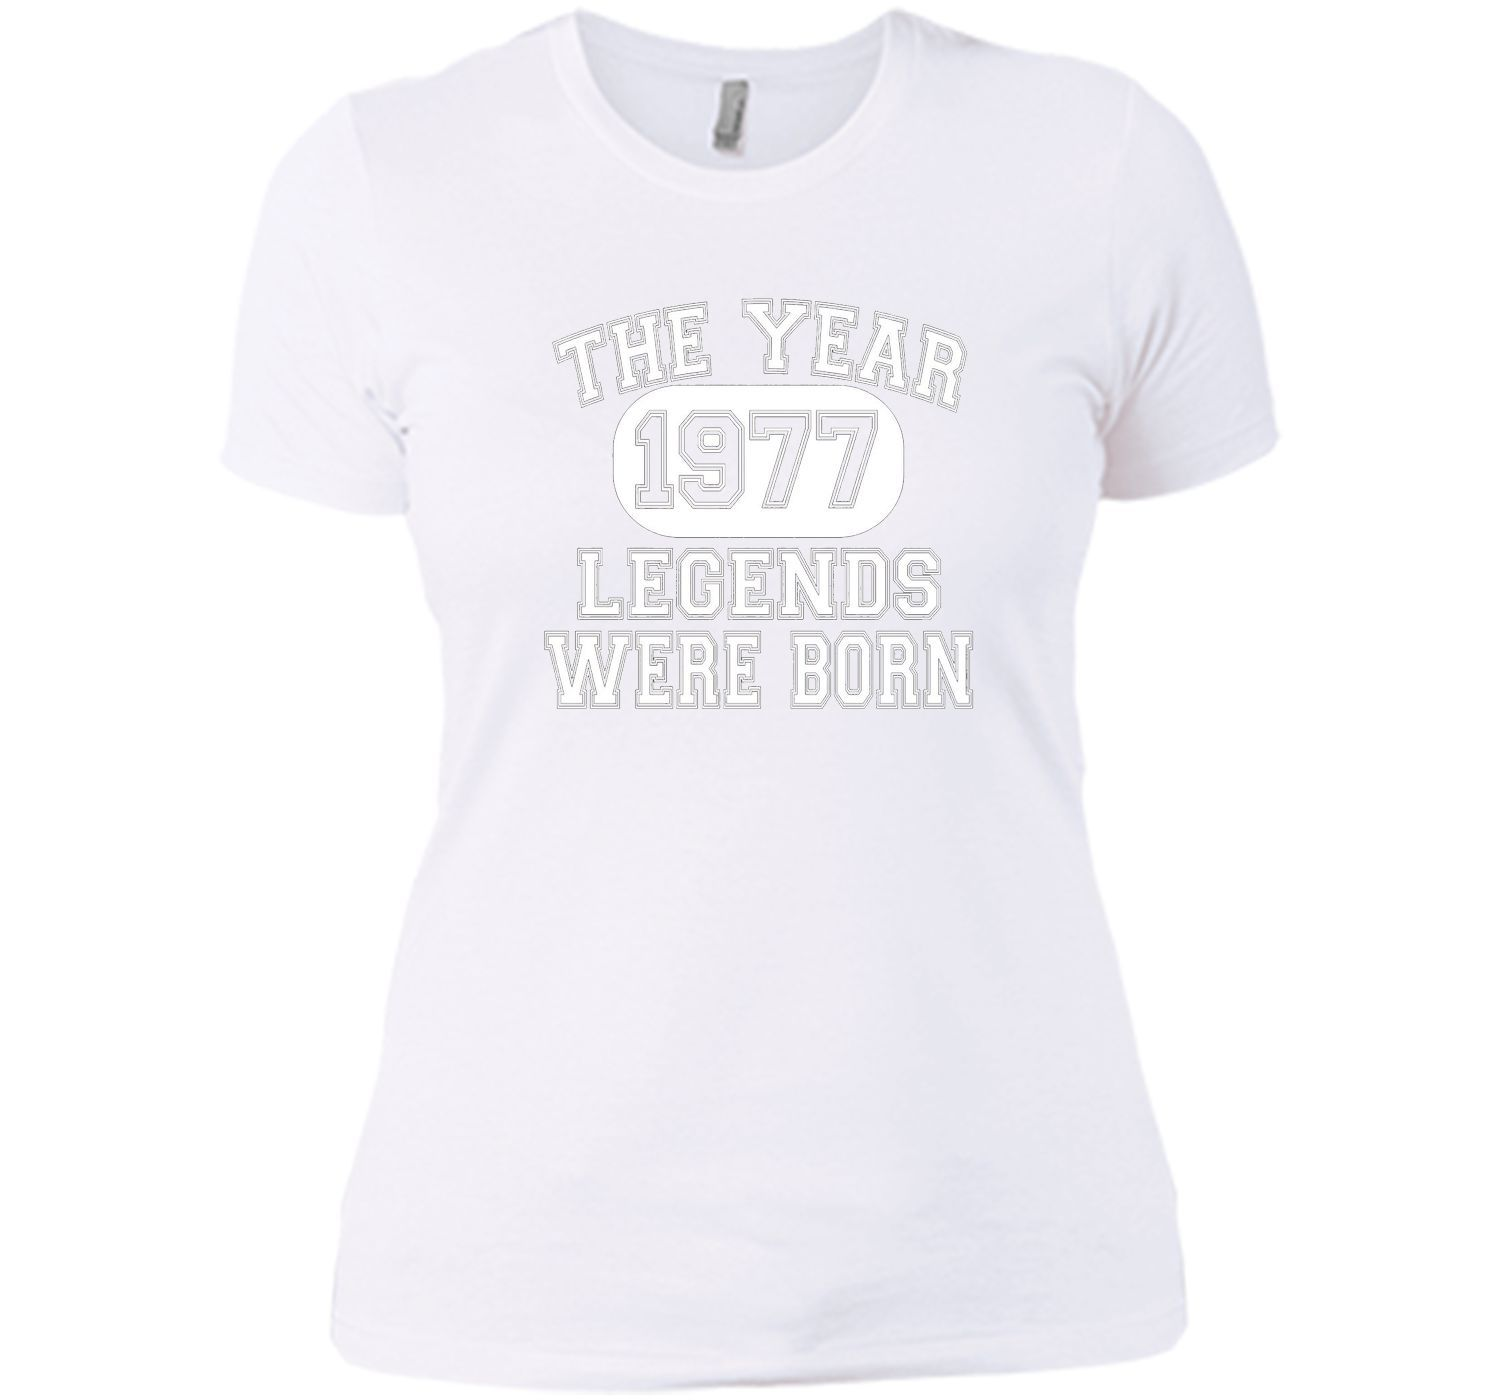 40th Birthday T Shirt, 1977 The Year Legends Were Born